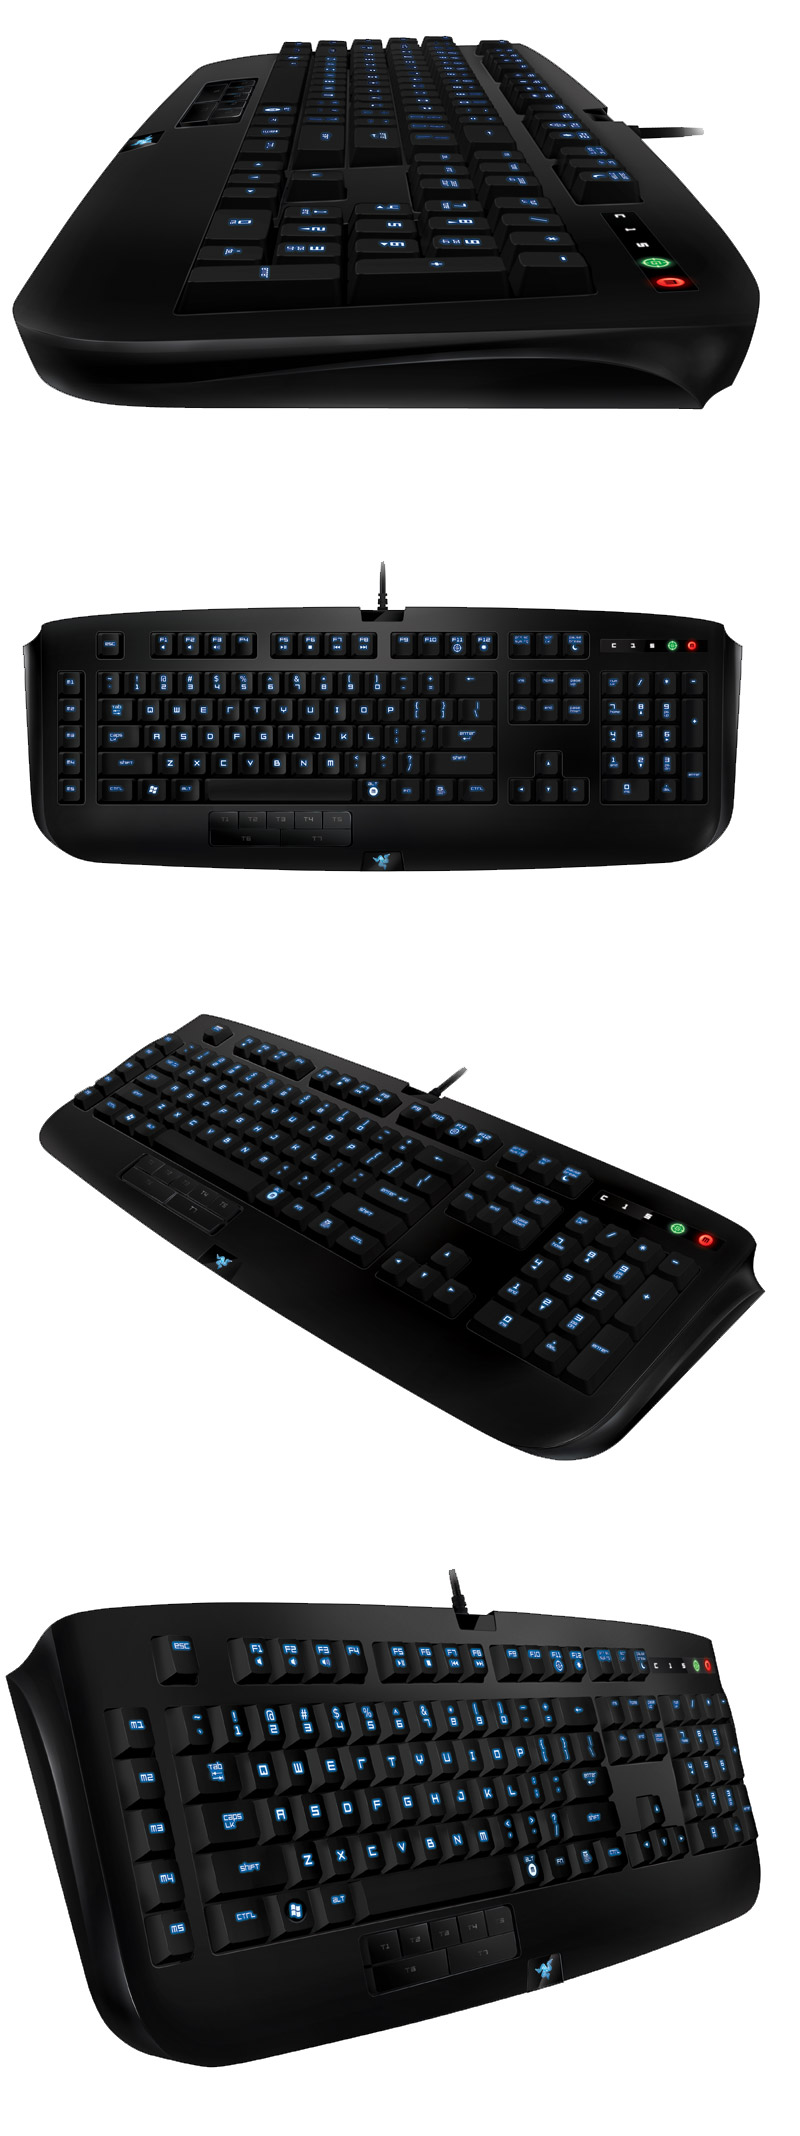 cheap razer products how to tell